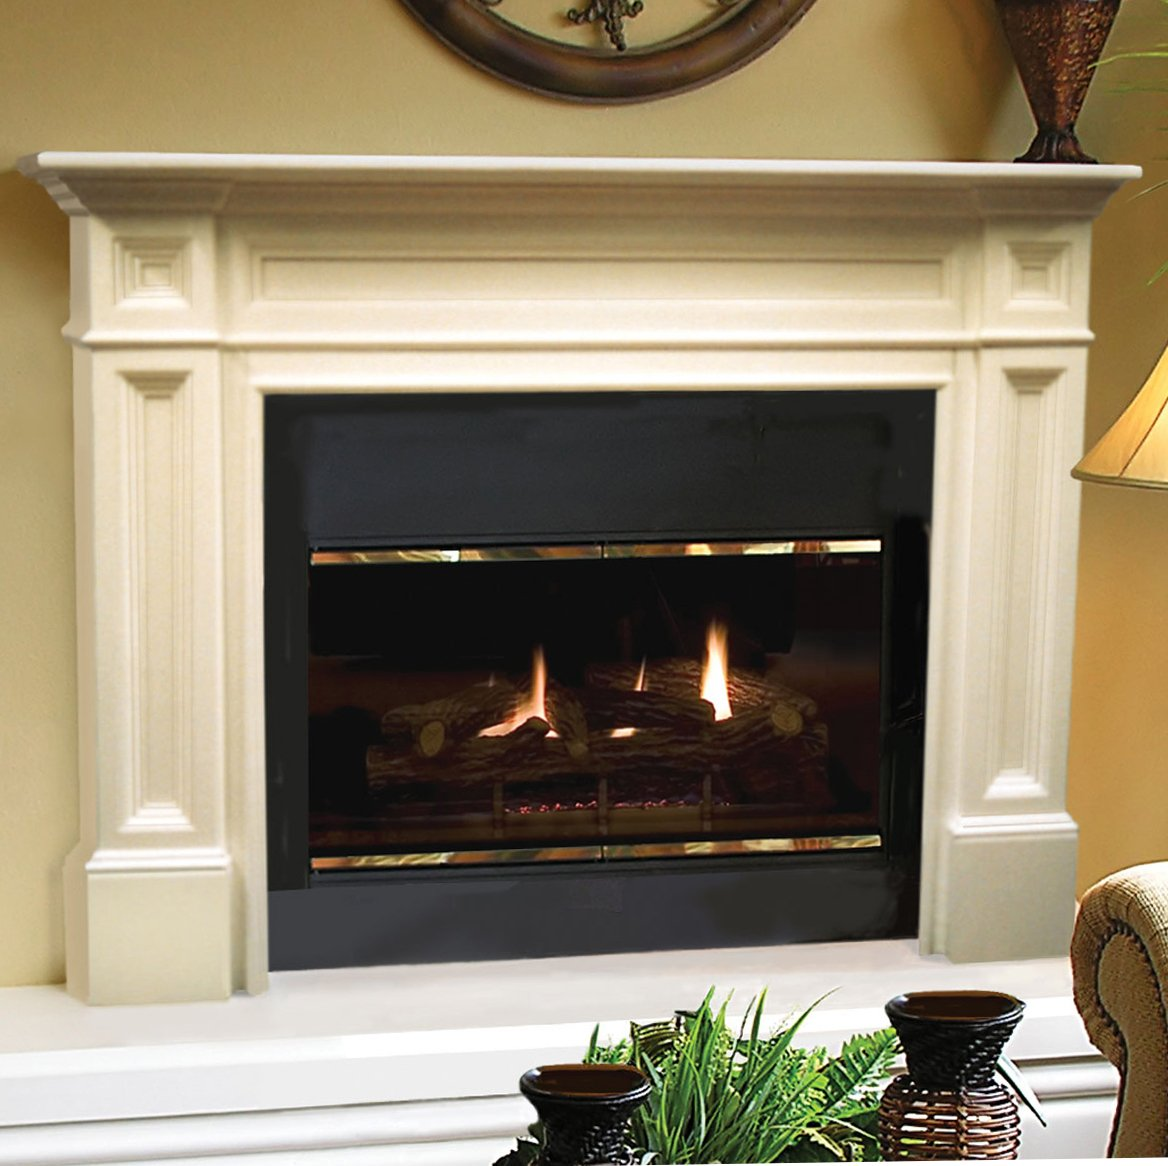 Pearl Mantels 140-56 Classique Fireplace Mantel, 56-Inch, Unfinished by Pearl Mantels